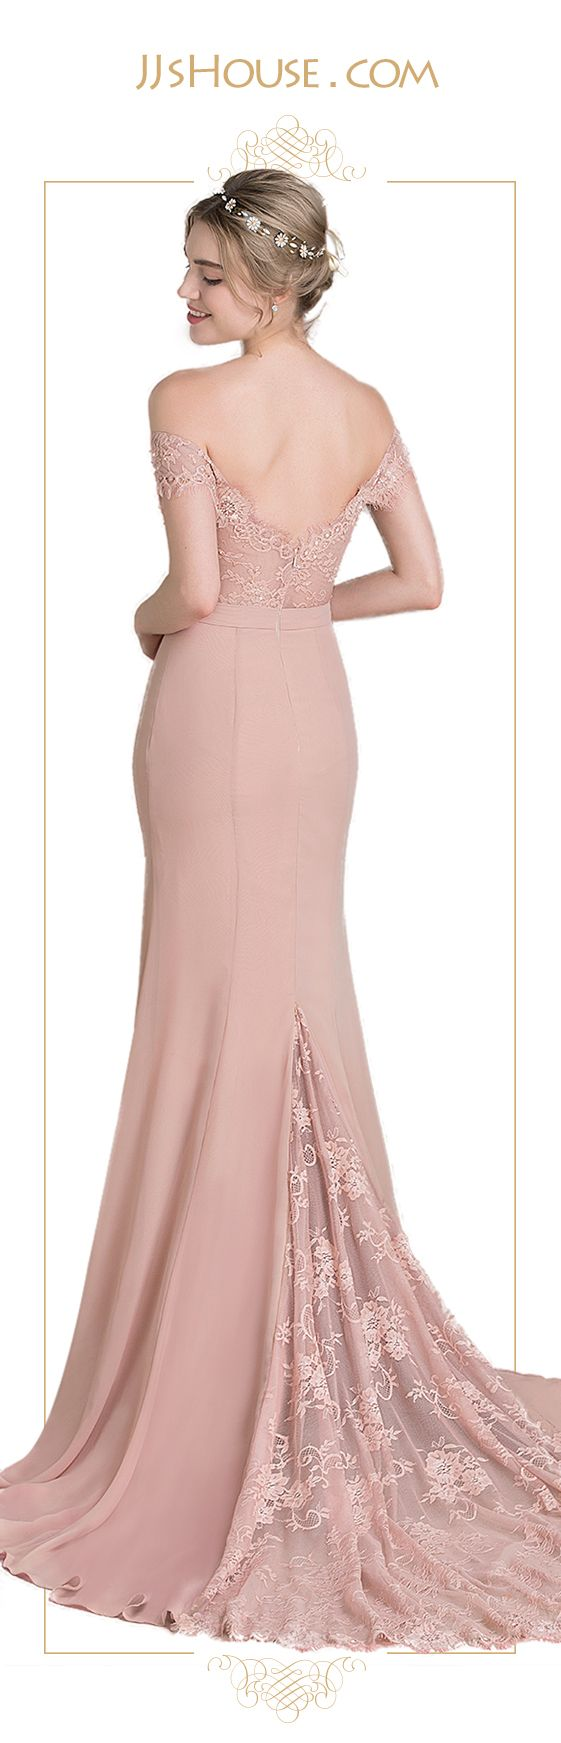 This dress can be a bridesmaid dress, evening dress, and prom dress ...